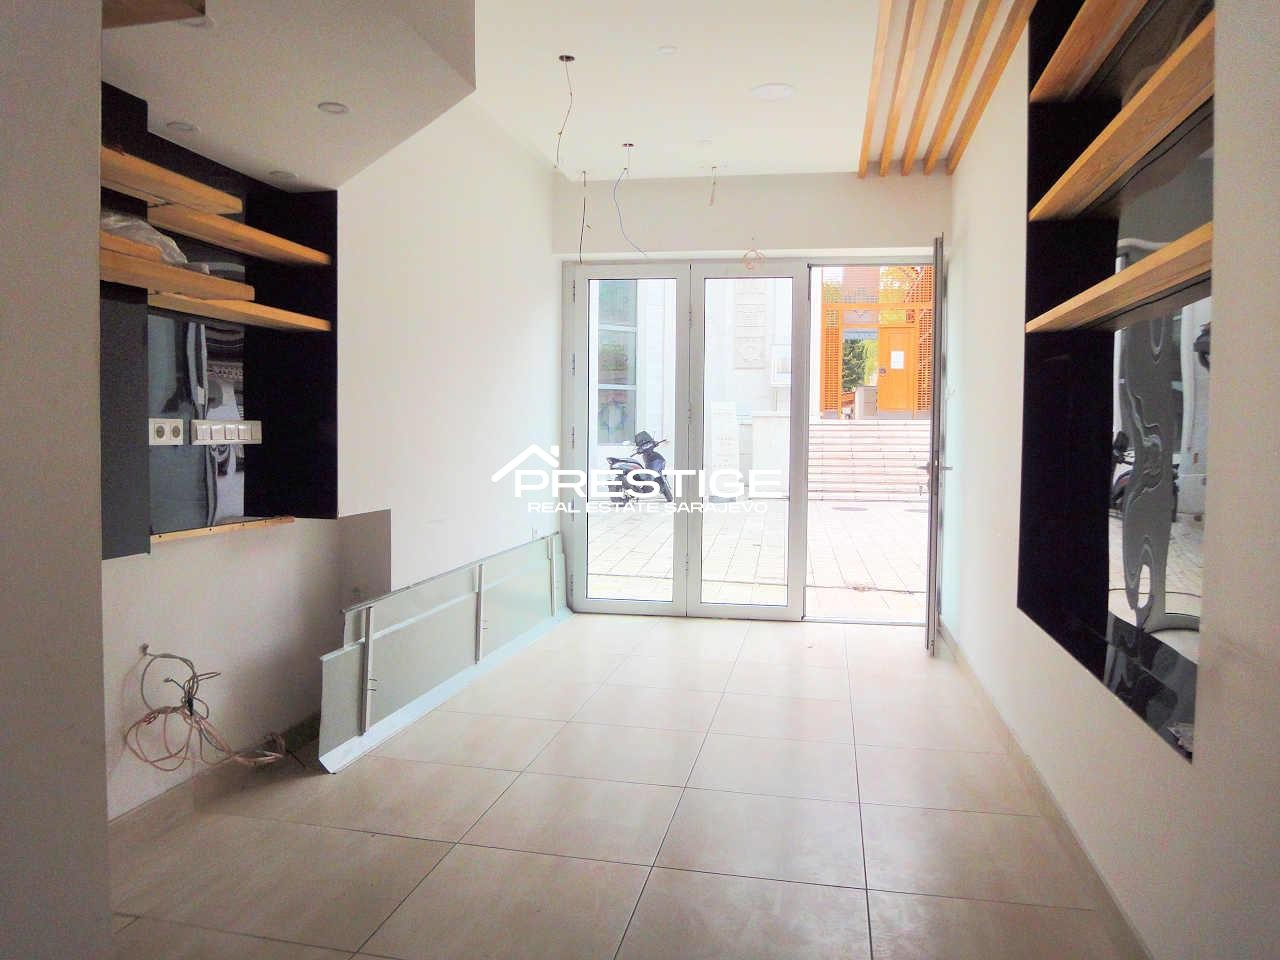 Commercial property Old Town 8821